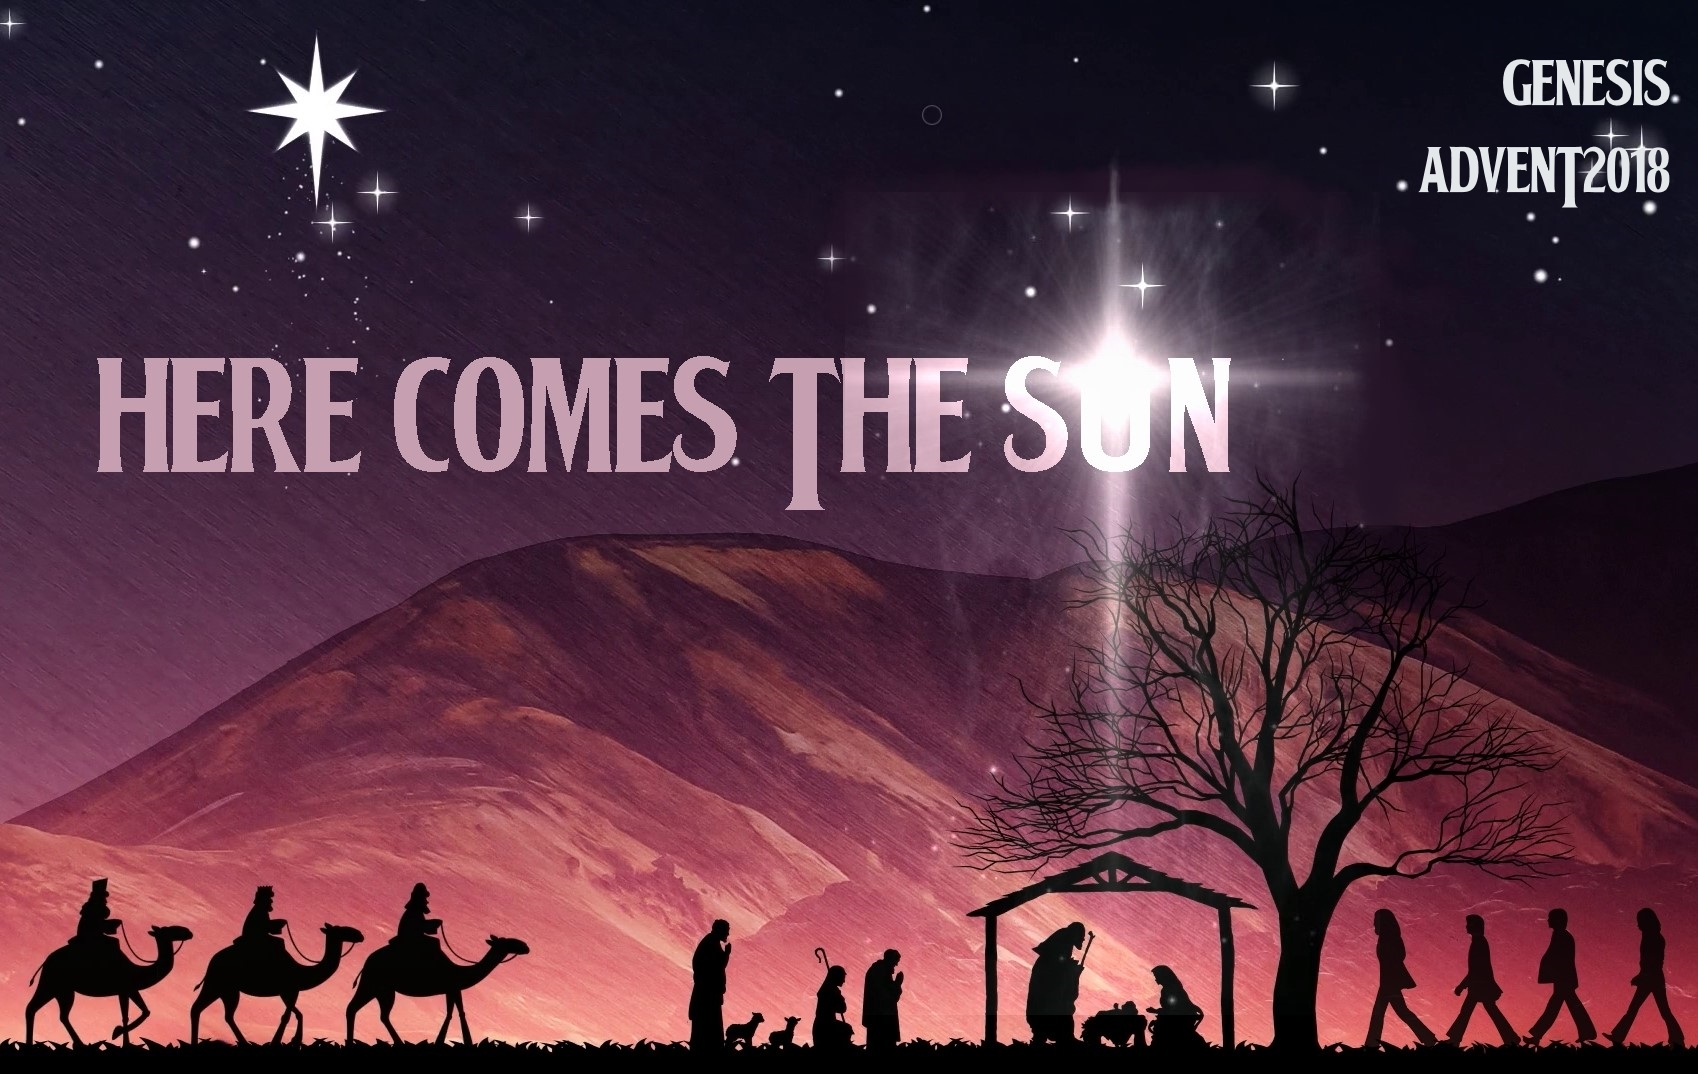 Our Advent Series